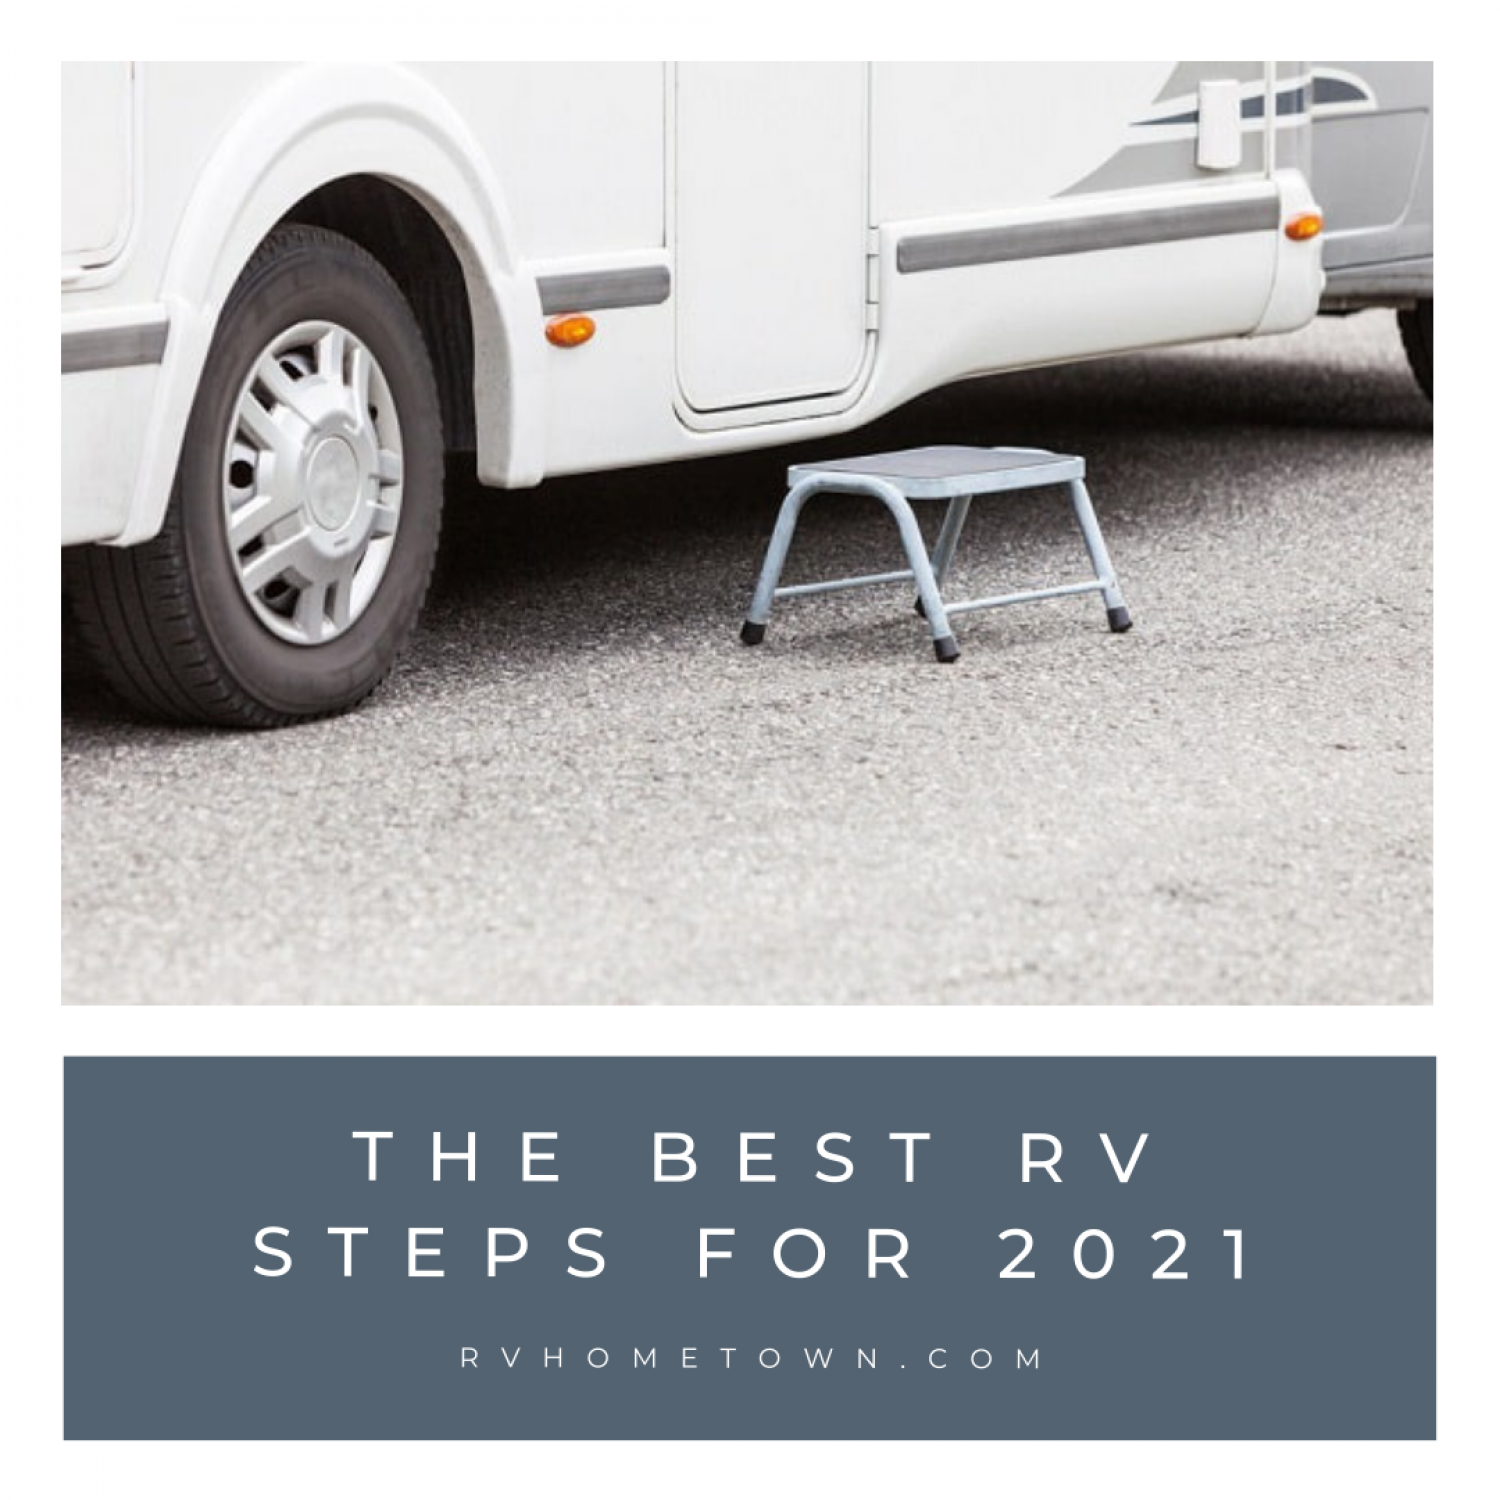 The Best RV Steps for 2021 Infographic